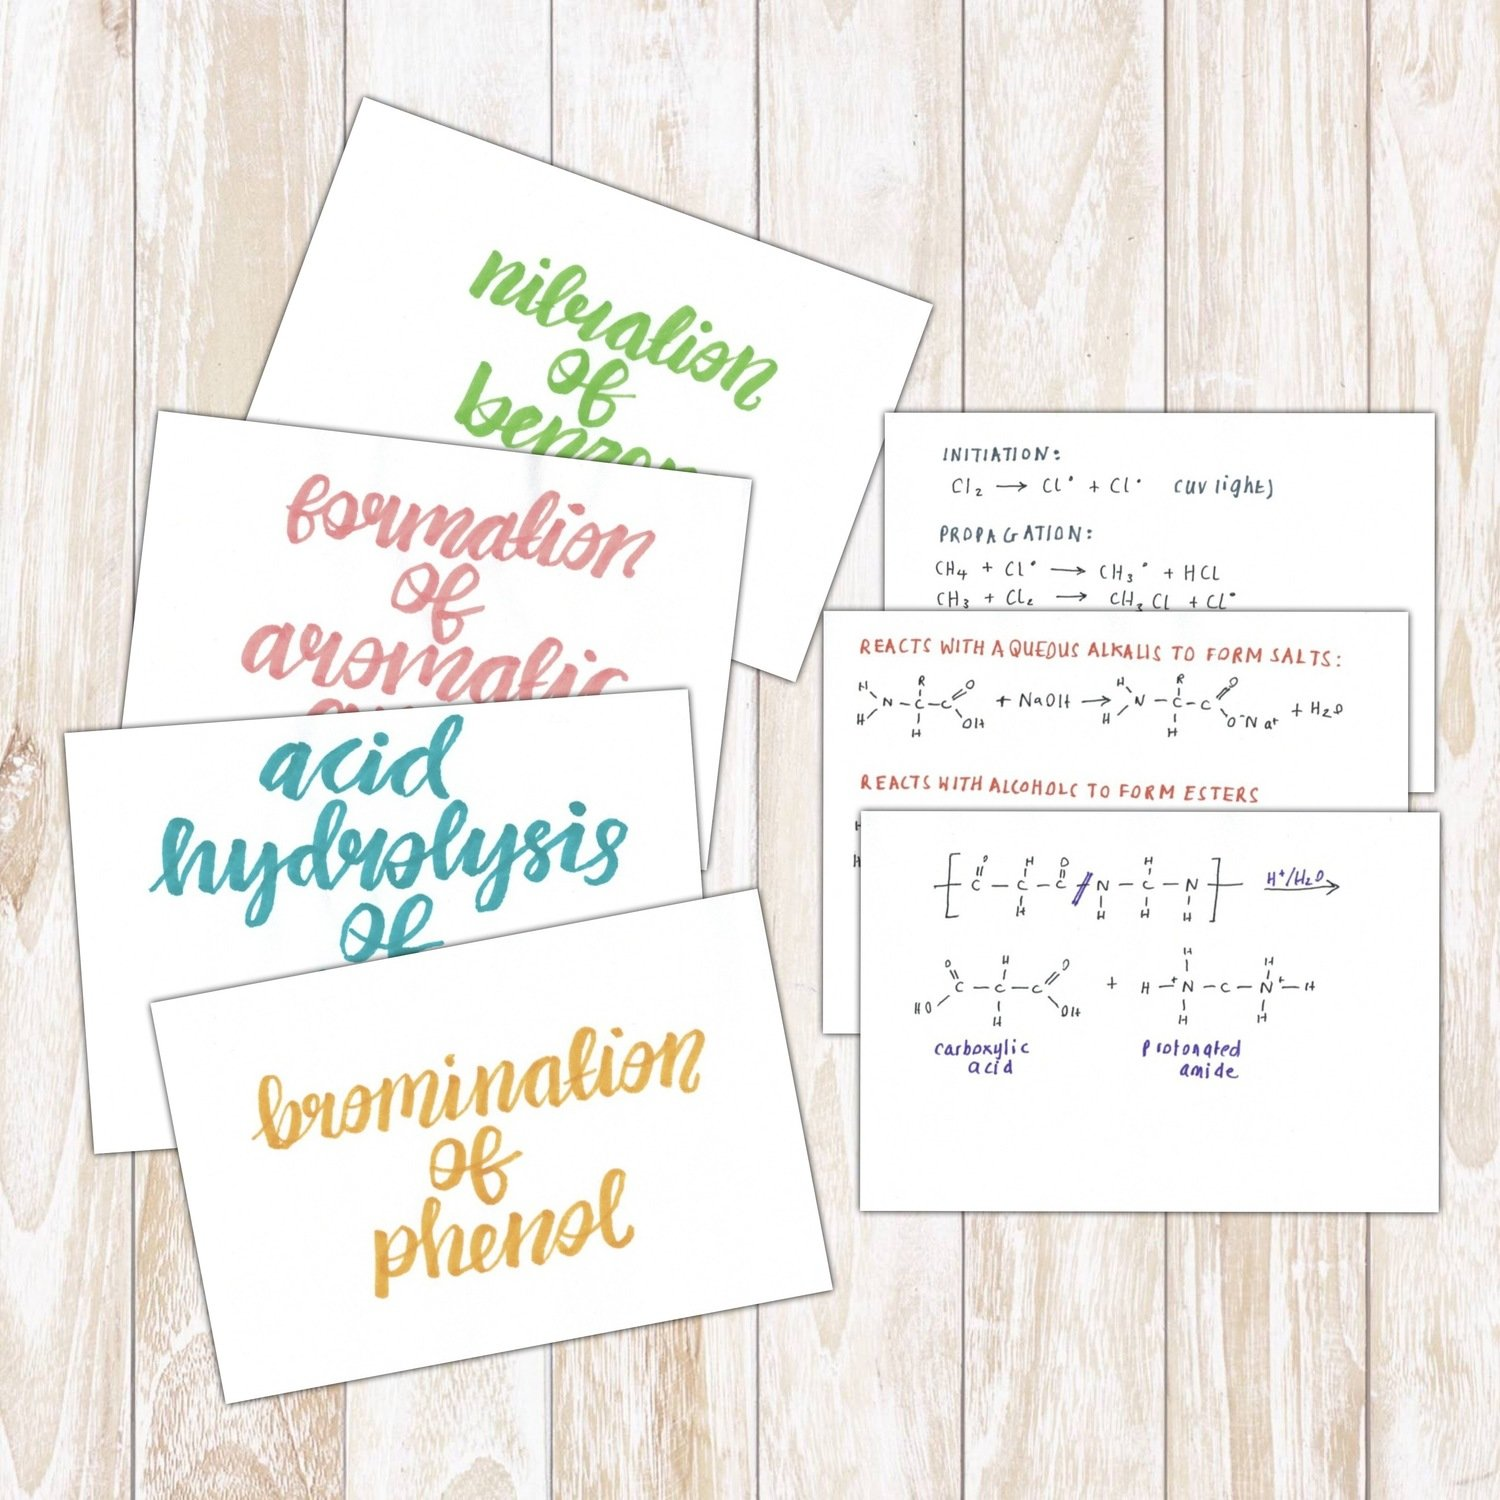 A-level Chemistry Flashcards | Reactions, Mechanisms, Equations